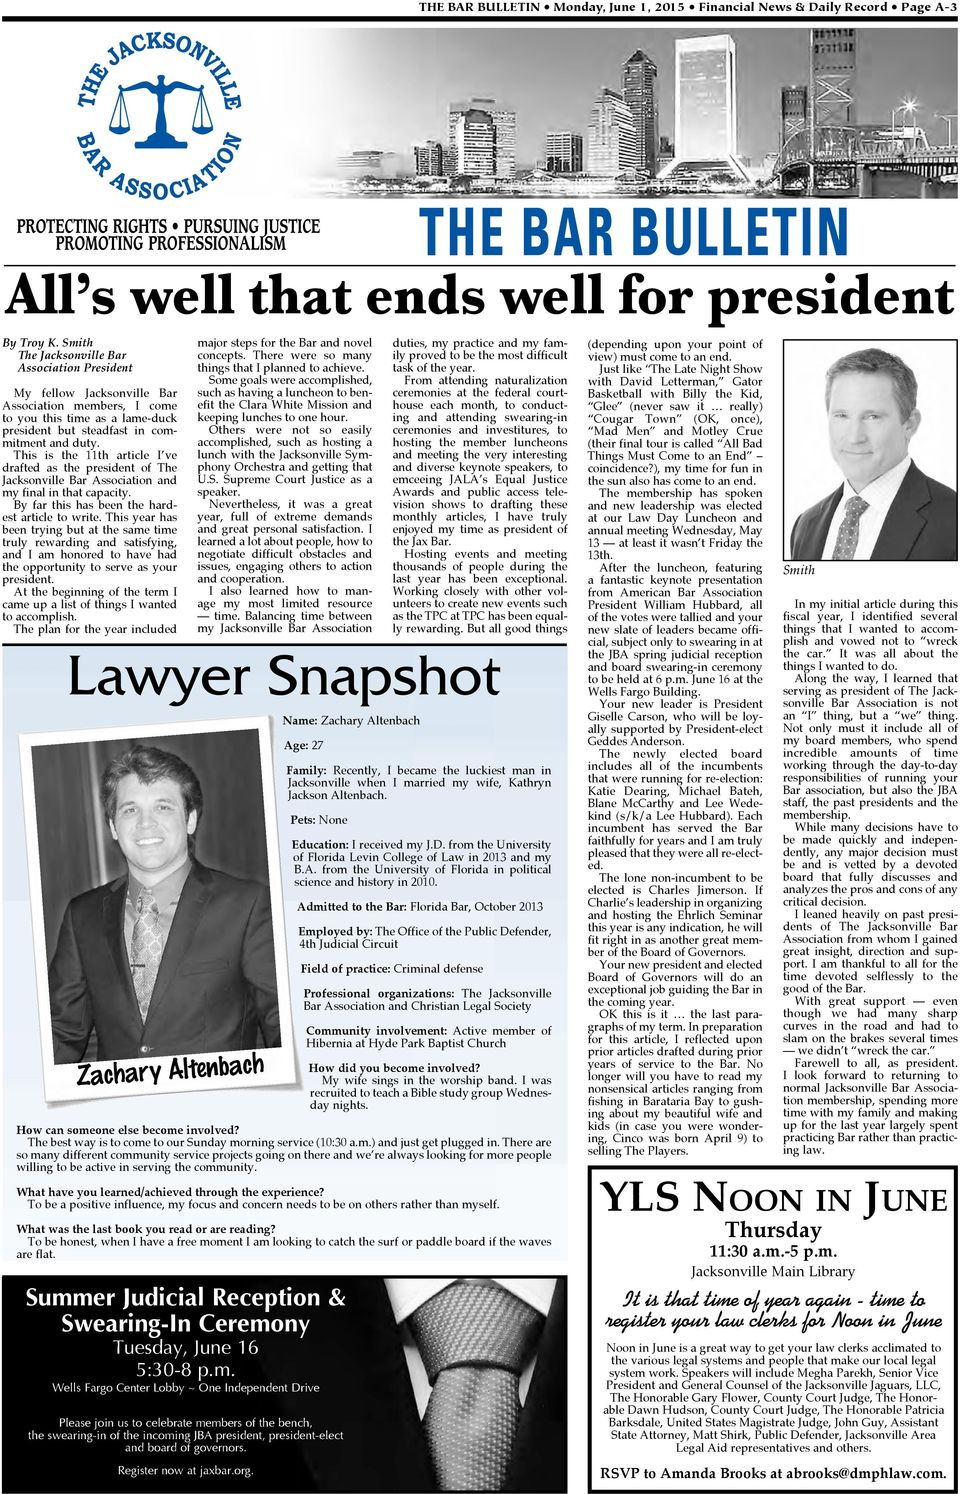 This is the 11th article I ve drafted as the president of The Jacksonville Bar Association and my final in that capacity. By far this has been the hardest article to write.